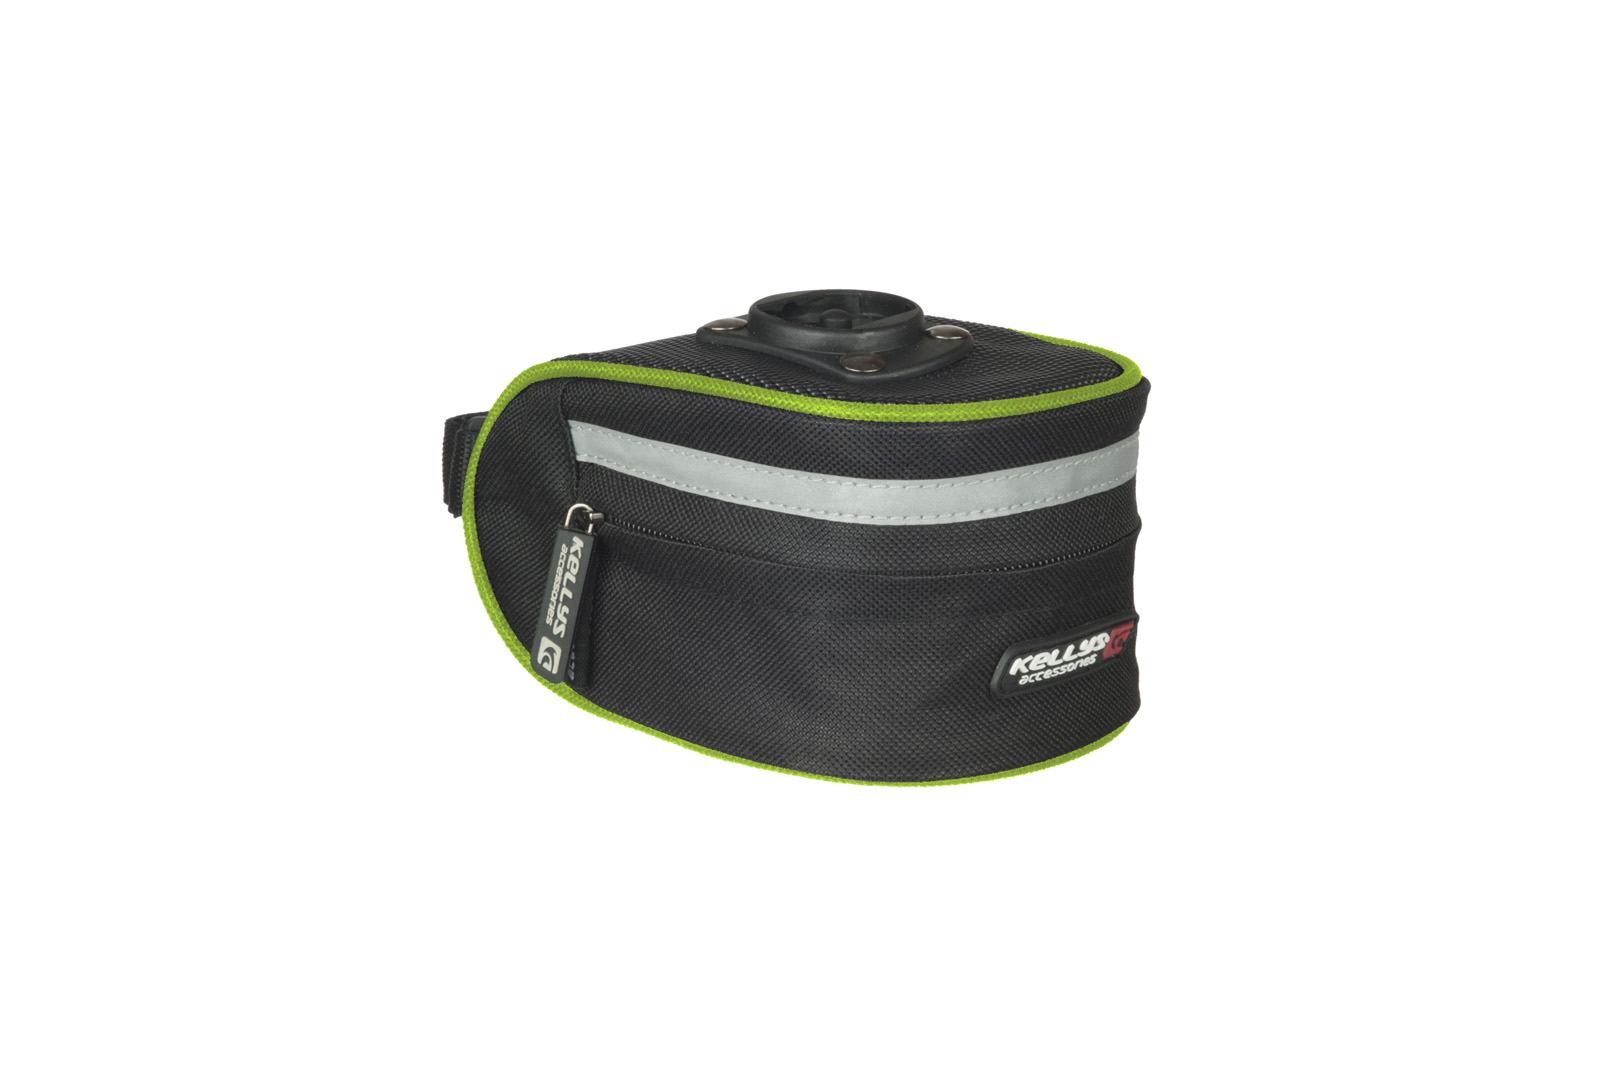 Satteltasche KELLYS HANDY black-lime green M - Satteltasche KELLYS HANDY black-lime green M